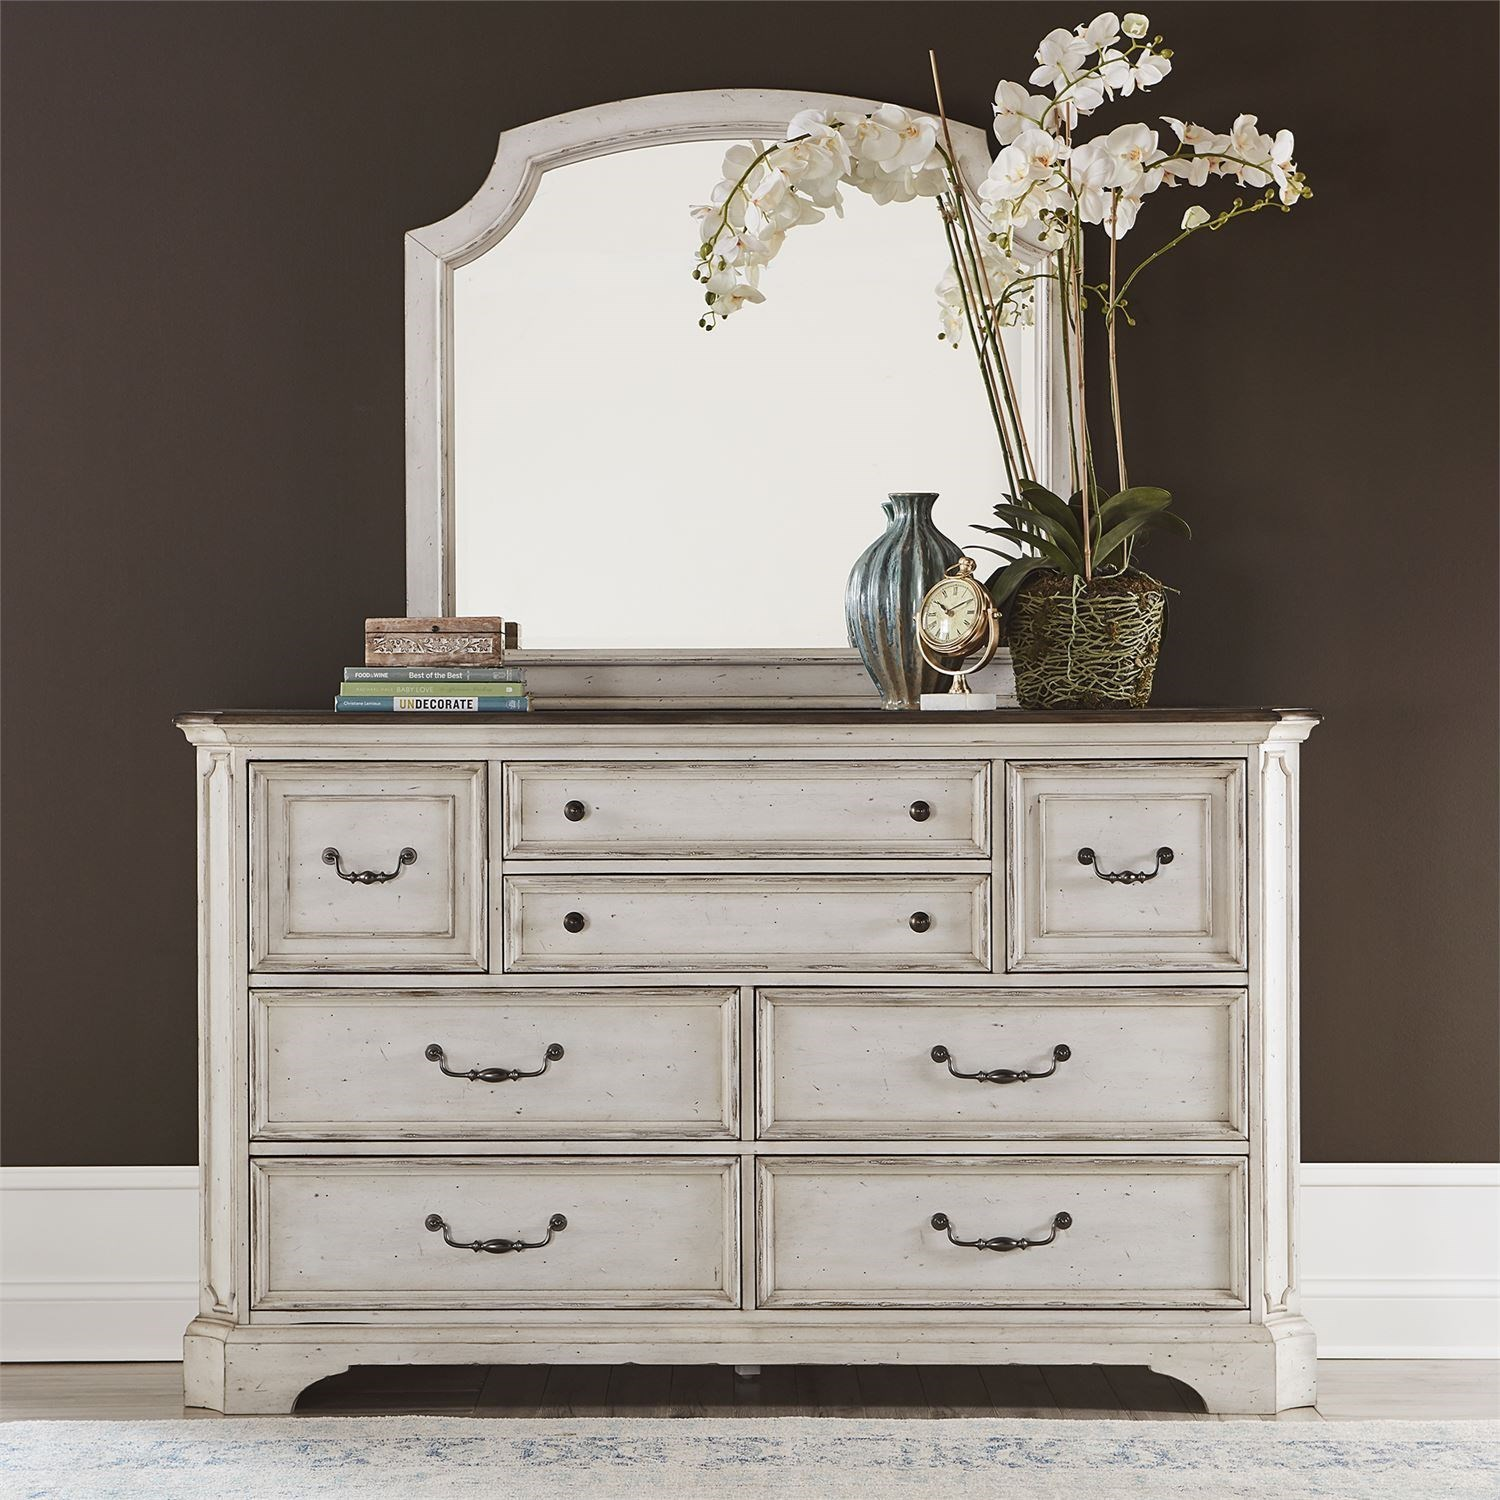 Abbey Road Dresser and Mirror by Liberty Furniture at Factory Direct Furniture